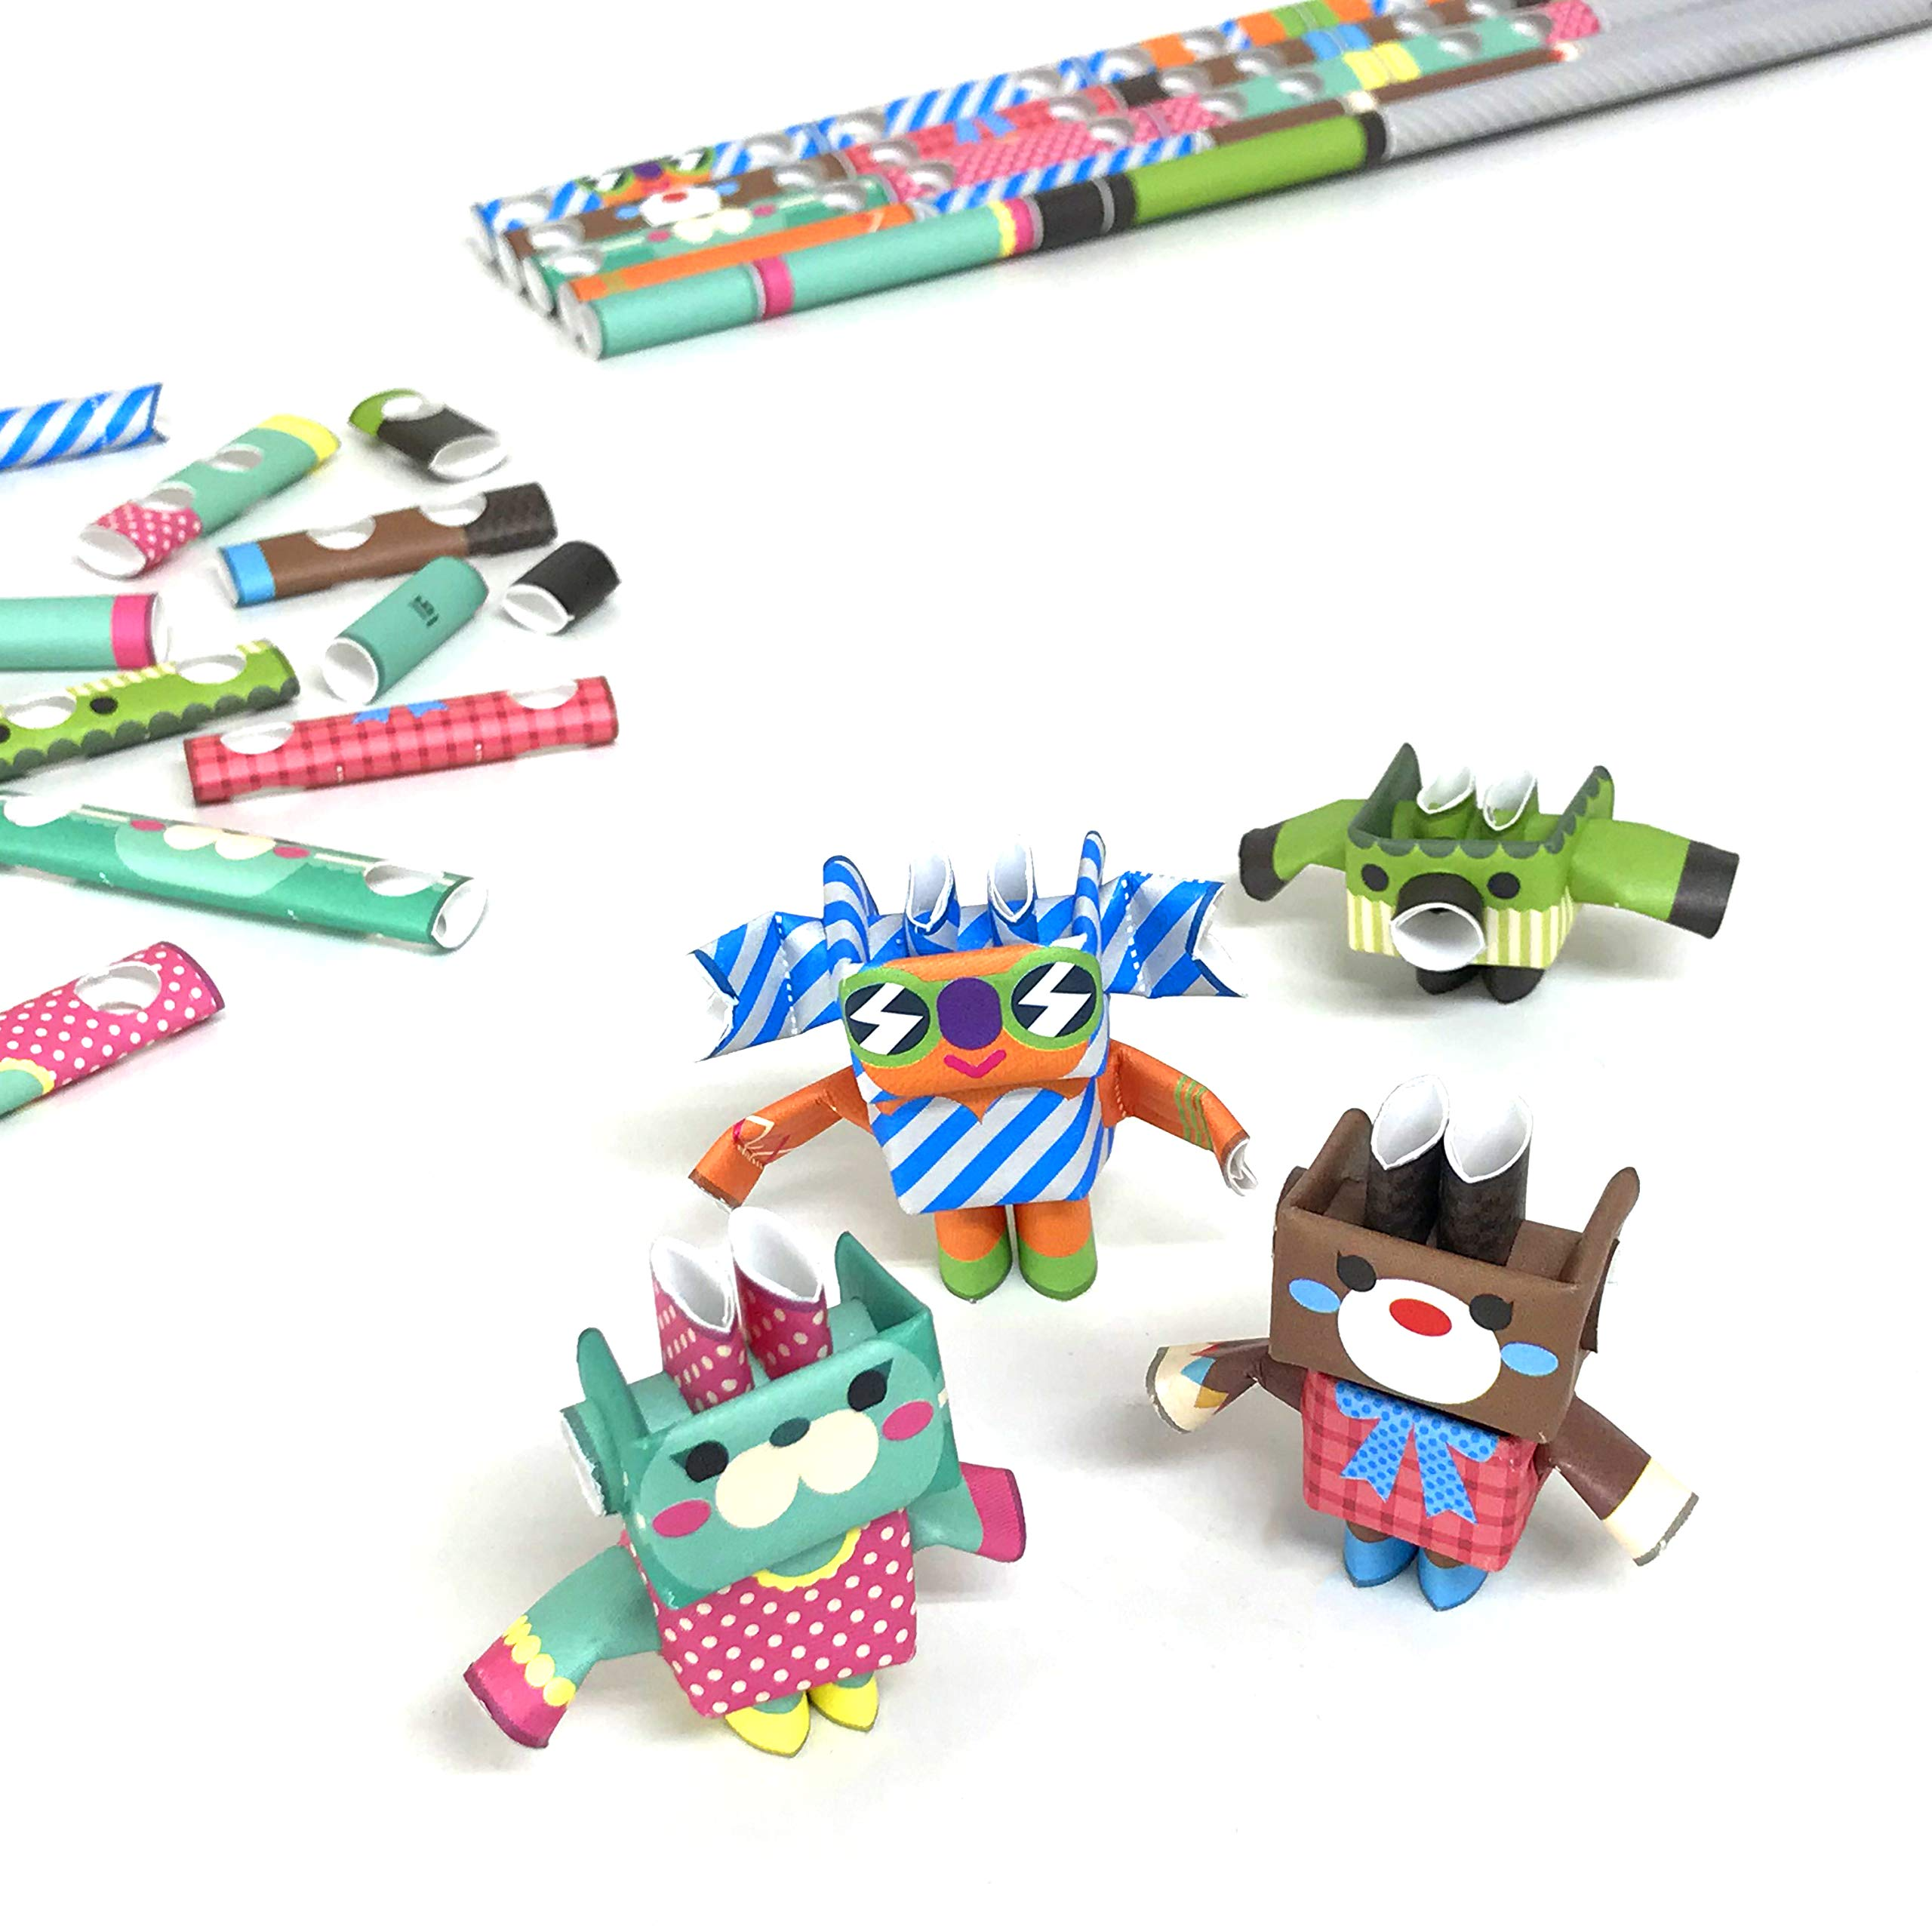 PIPEROID DIY Paper Craft Kit Sweets & Co. Photogenic Sisters - Japanese Arts and Craft Kit for Kids and Adults - Birthday Gift and Party Favor for 3D Puzzle and Origami Paper Craft Enthusiasts